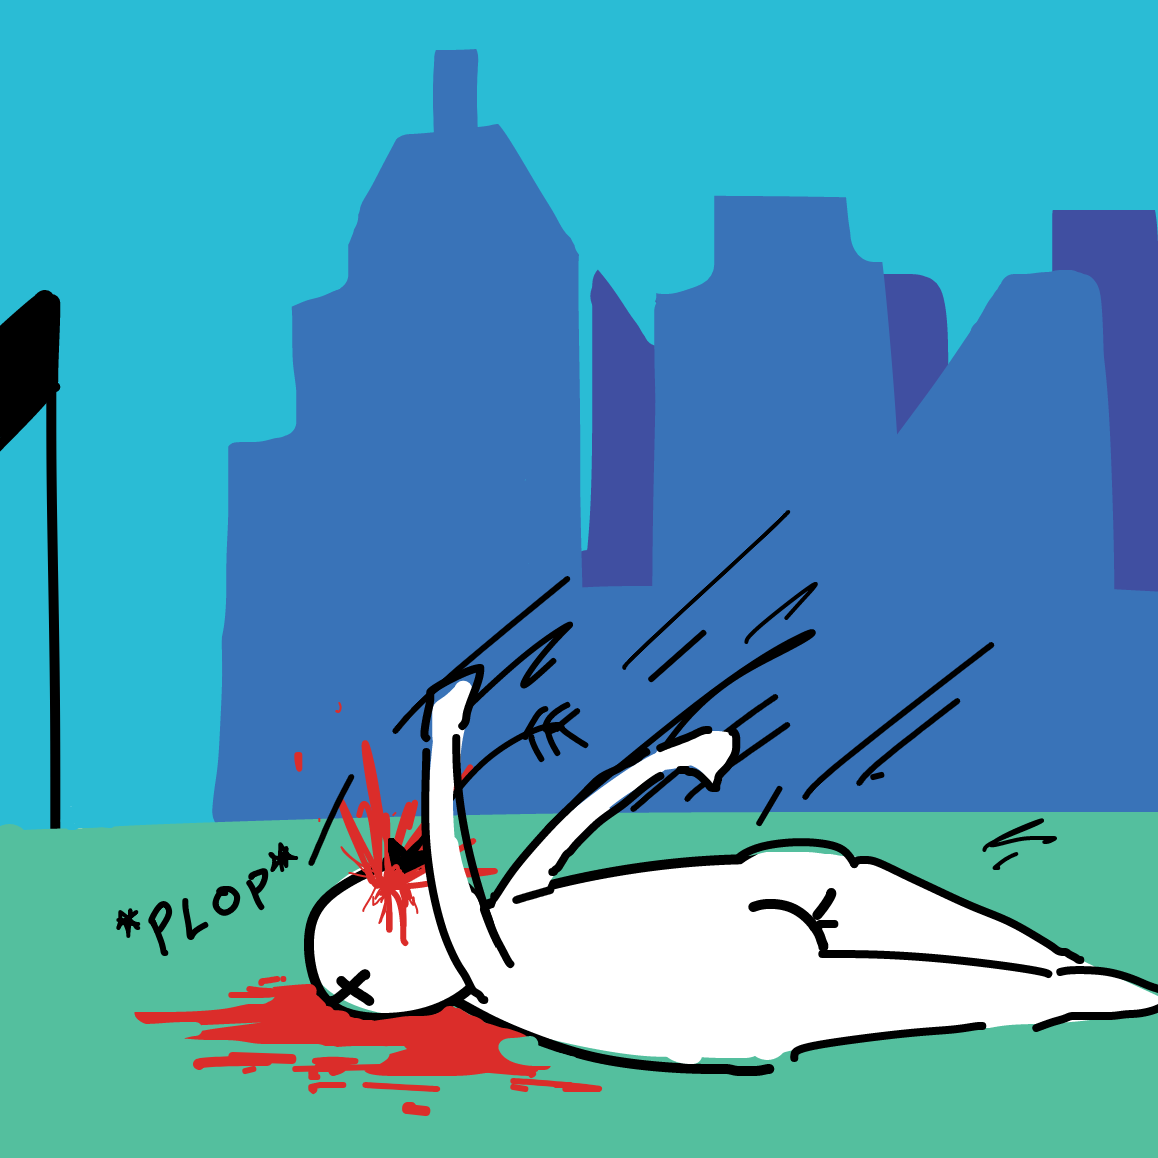 someone had to do it - Online Drawing Game Comic Strip Panel by The Burned Man